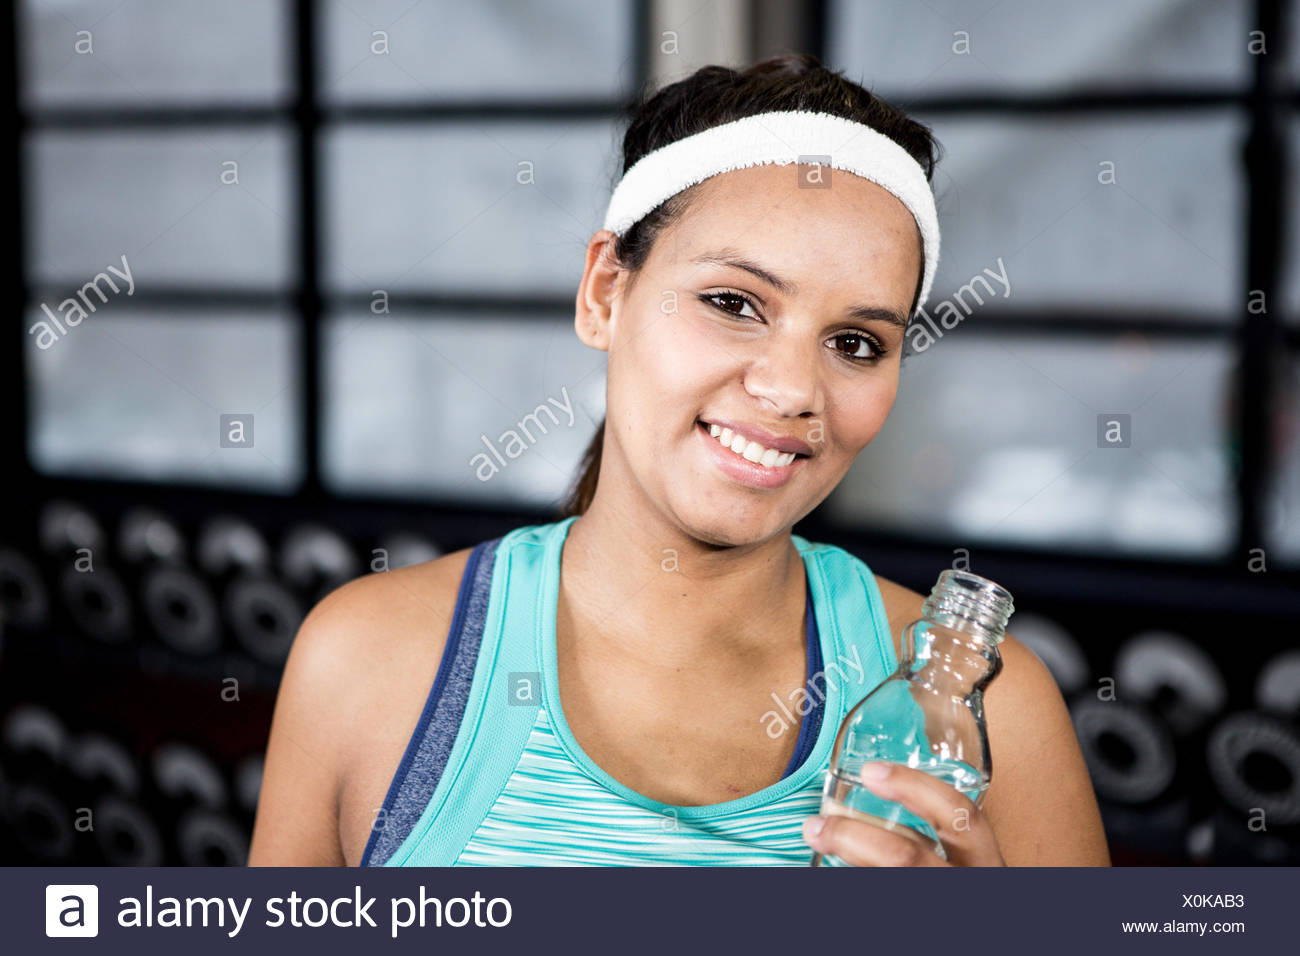 Pregnant woman with water bottle - Stock Image